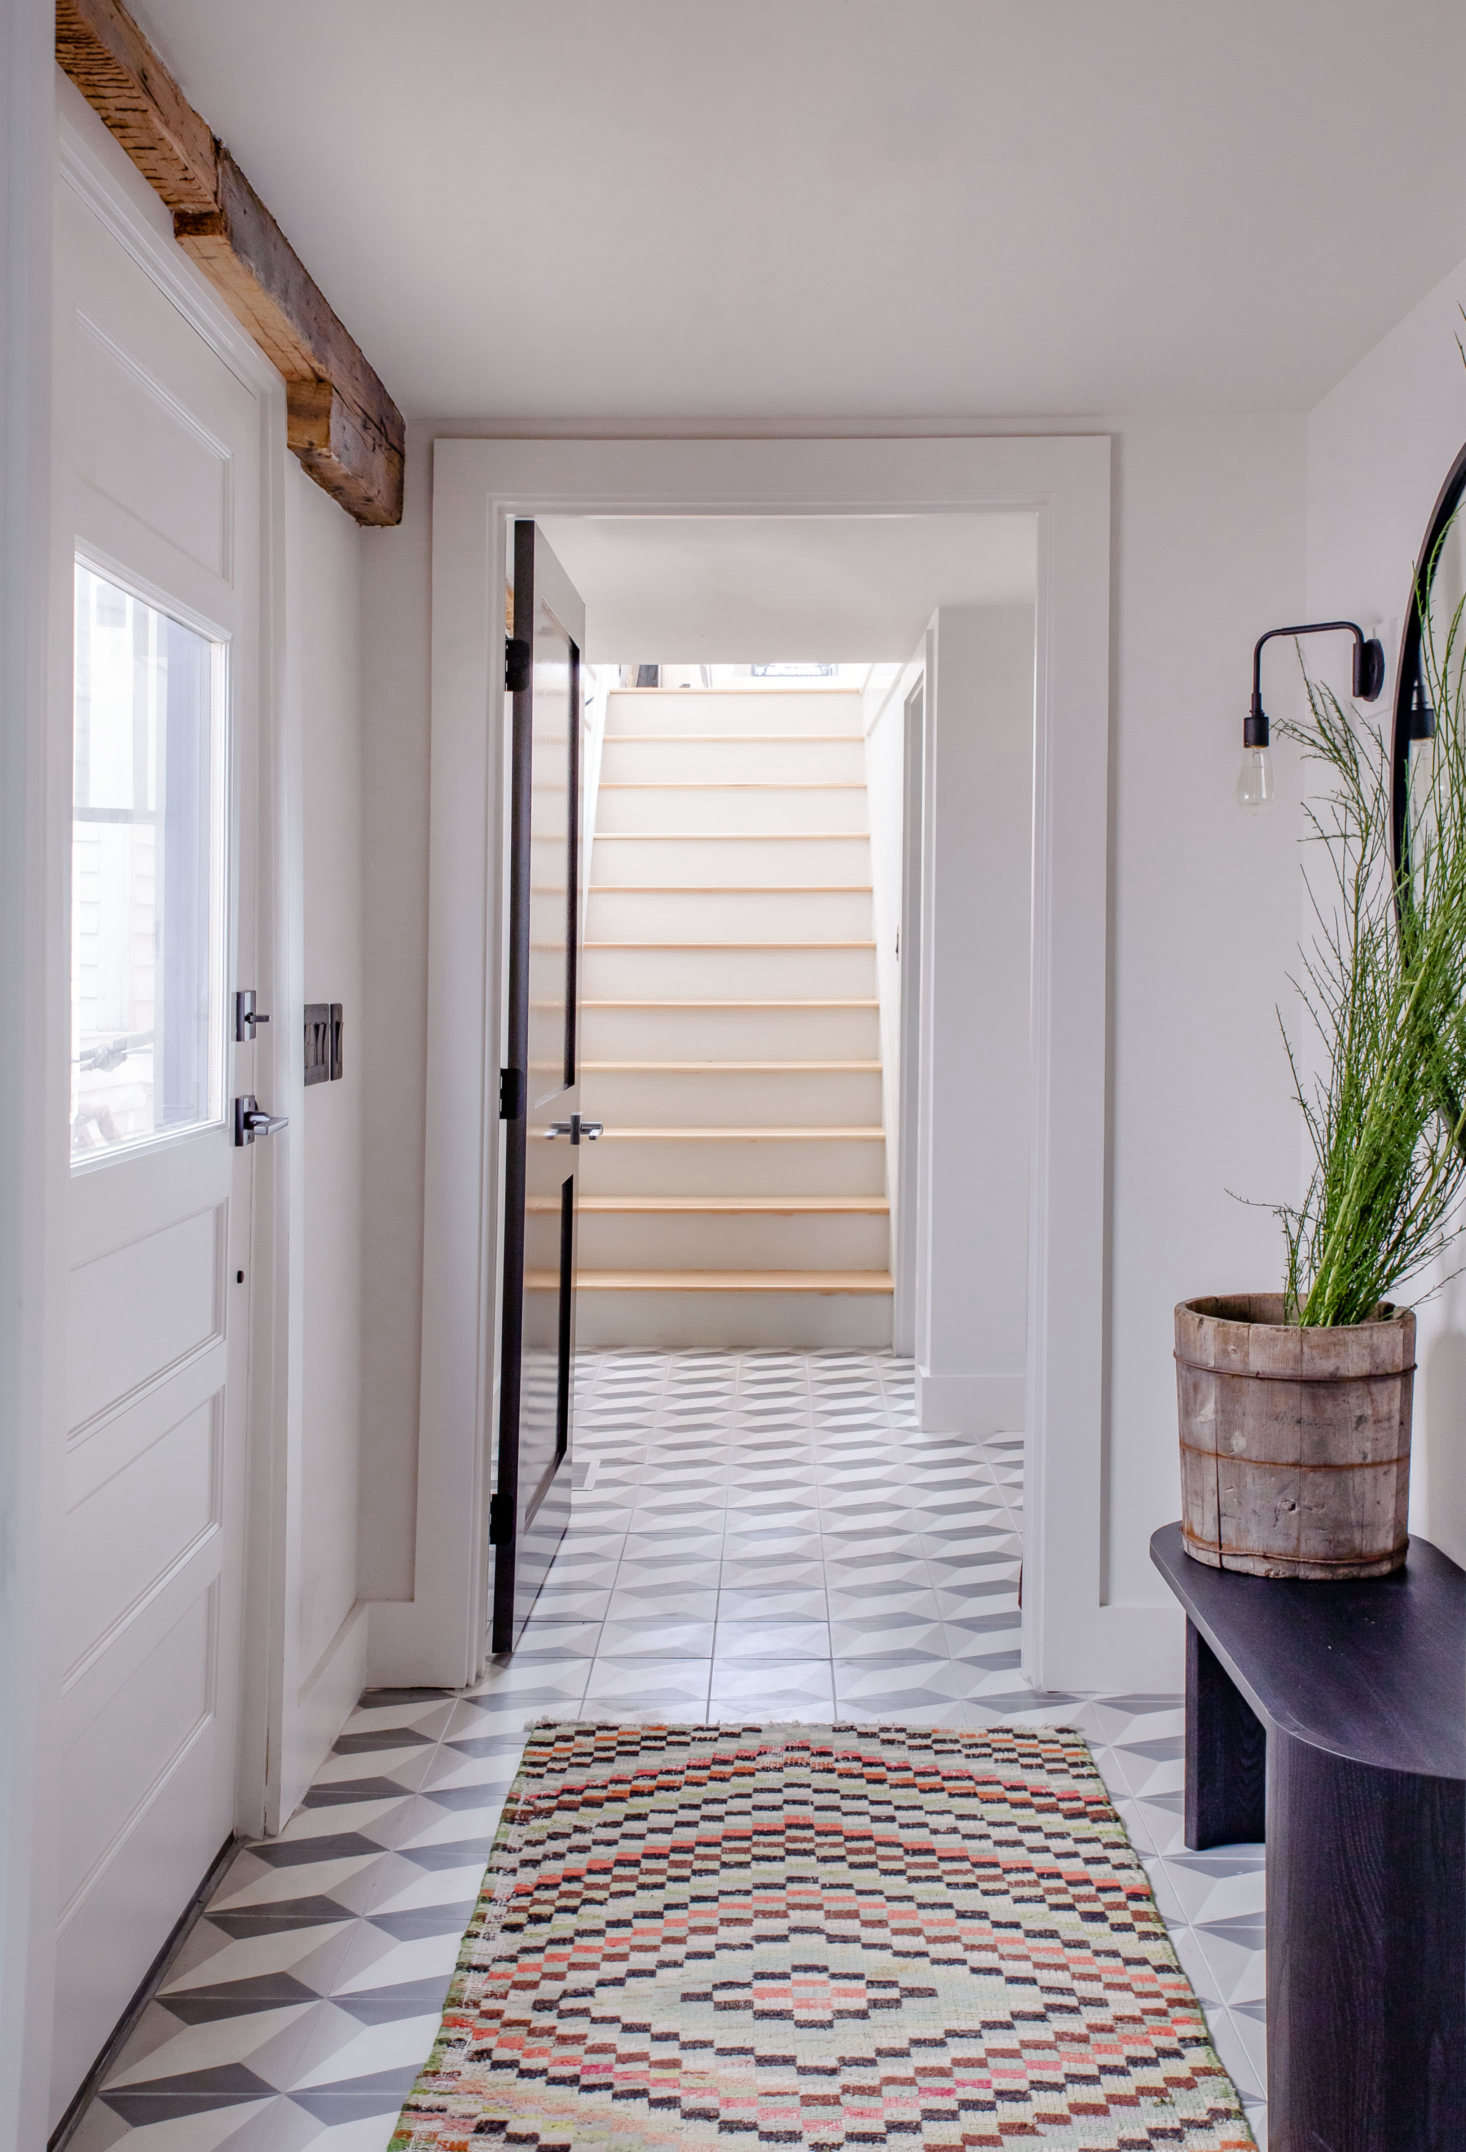 Entryways are sometimes guilty of becoming drop zones for coats, bags, and the like. Let these15 Minimalist Entryways We'd Love to Come Home Tobe your inspiration to stow clutter in closets and keep your entryway clear and calm. Photograph by Justine Hand.